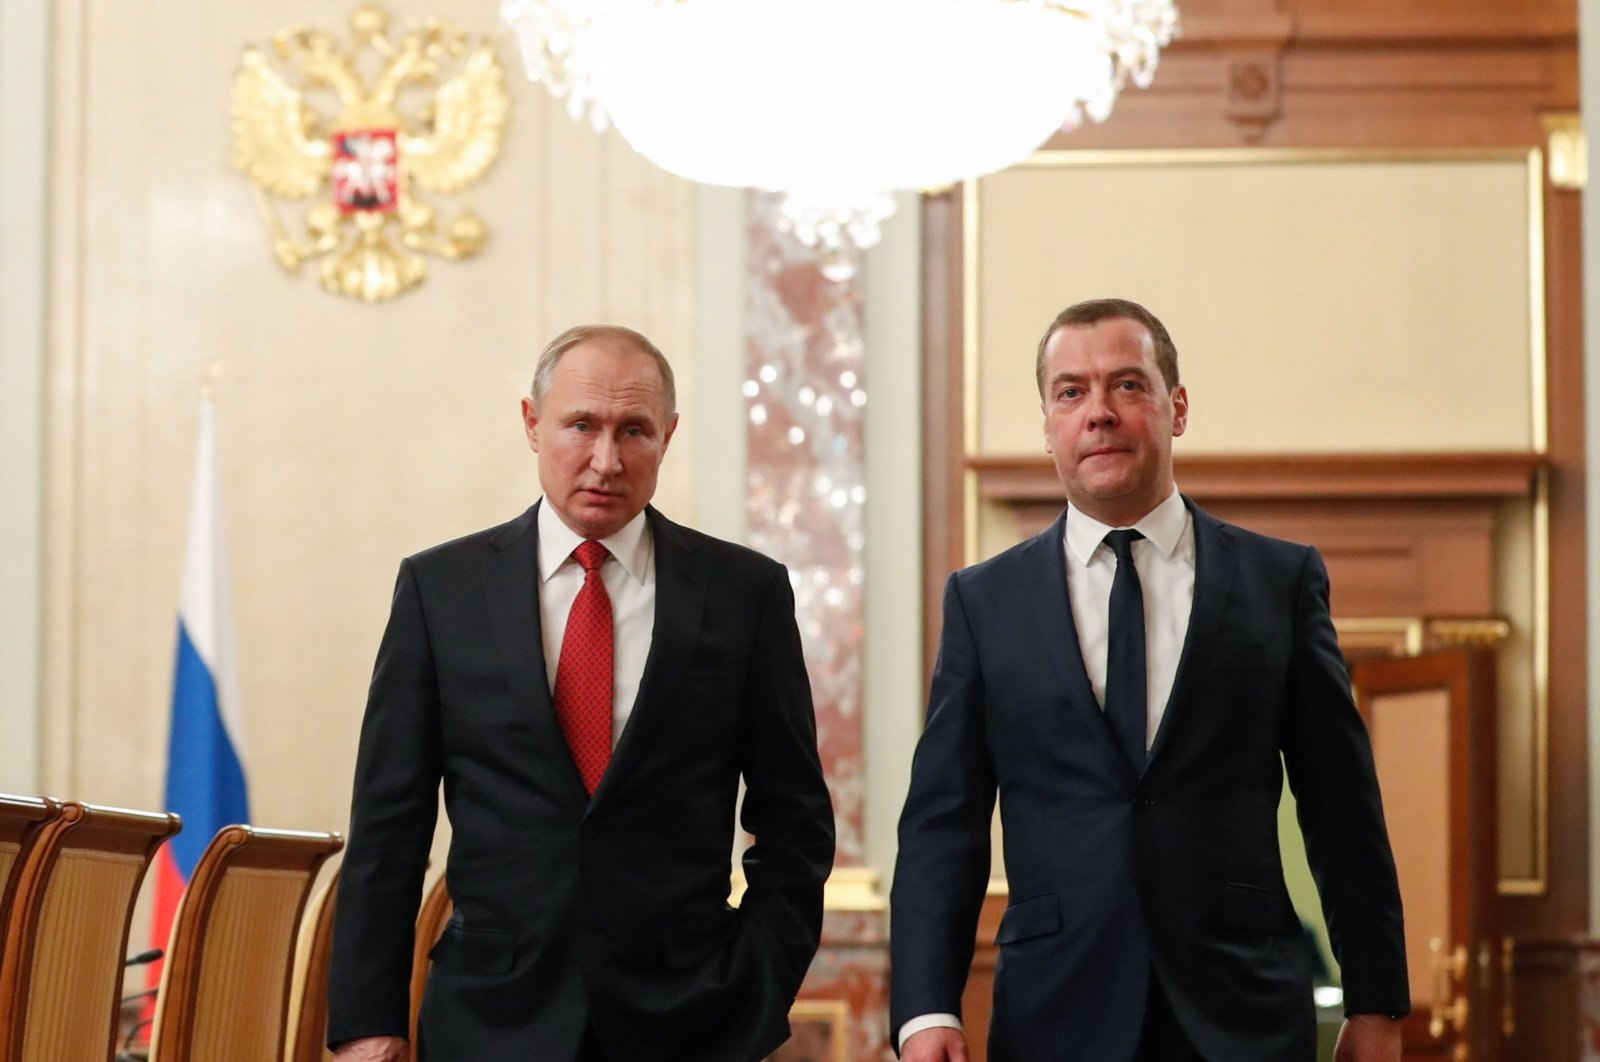 Russian President Vladimir Putin and then-Prime Minister Dmitry Medvedev walk before a meeting with members of the government in Moscow, Russia, Jan. 15, 2020. (AFP Photo)